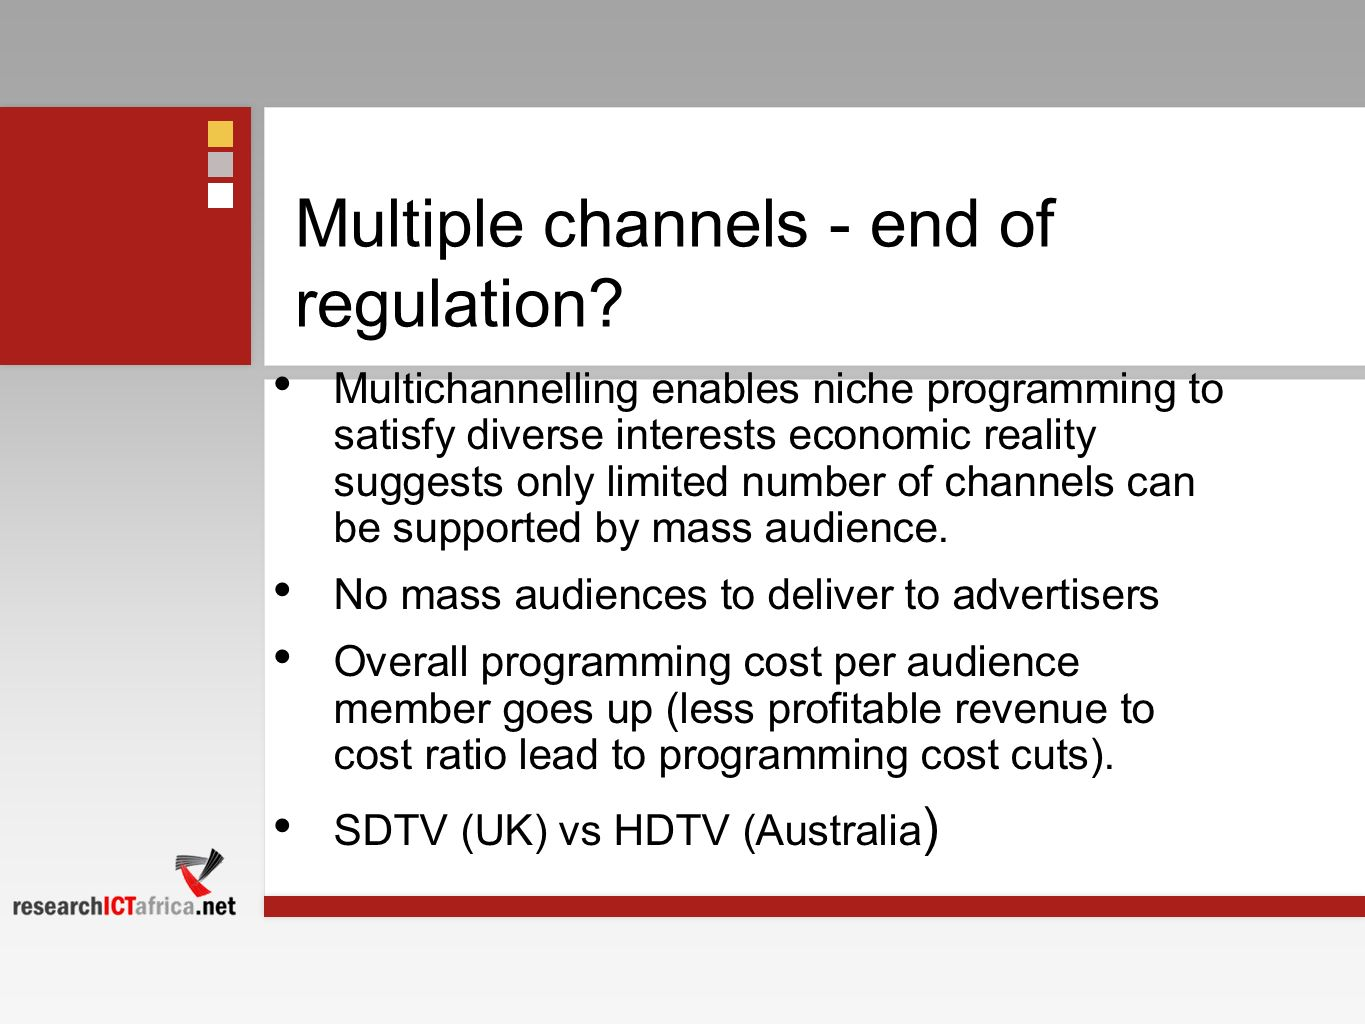 Multiple channels - end of regulation? Multichannelling enables niche programming to satisfy diverse interests economic reality suggests only limited